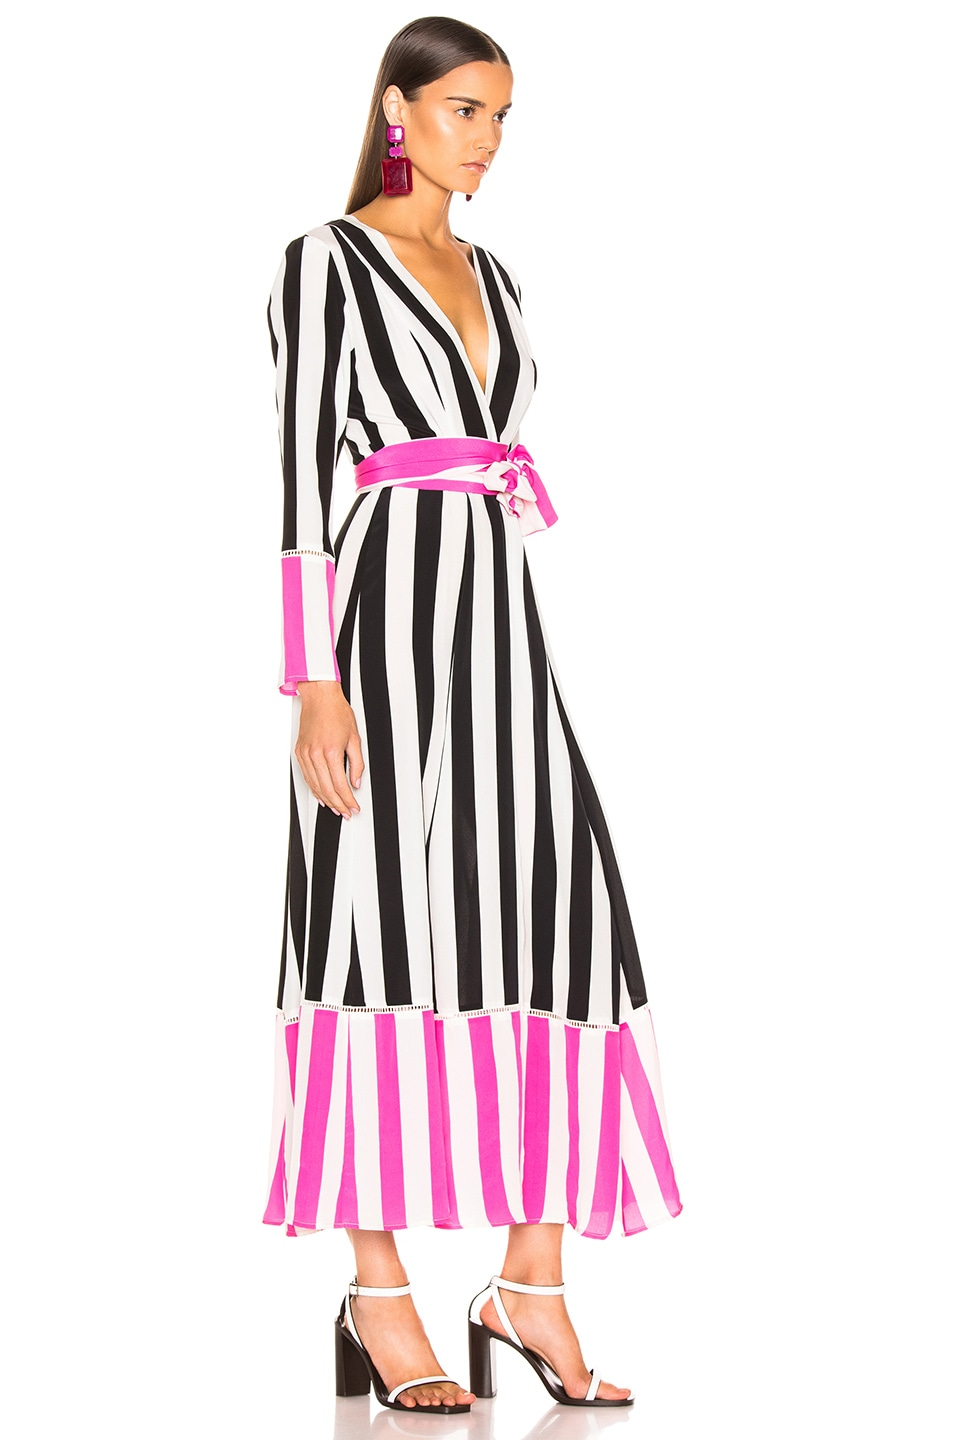 Image 2 of we are LEONE Contrast Maxi Cardigan in Black, White & Pink Stripe